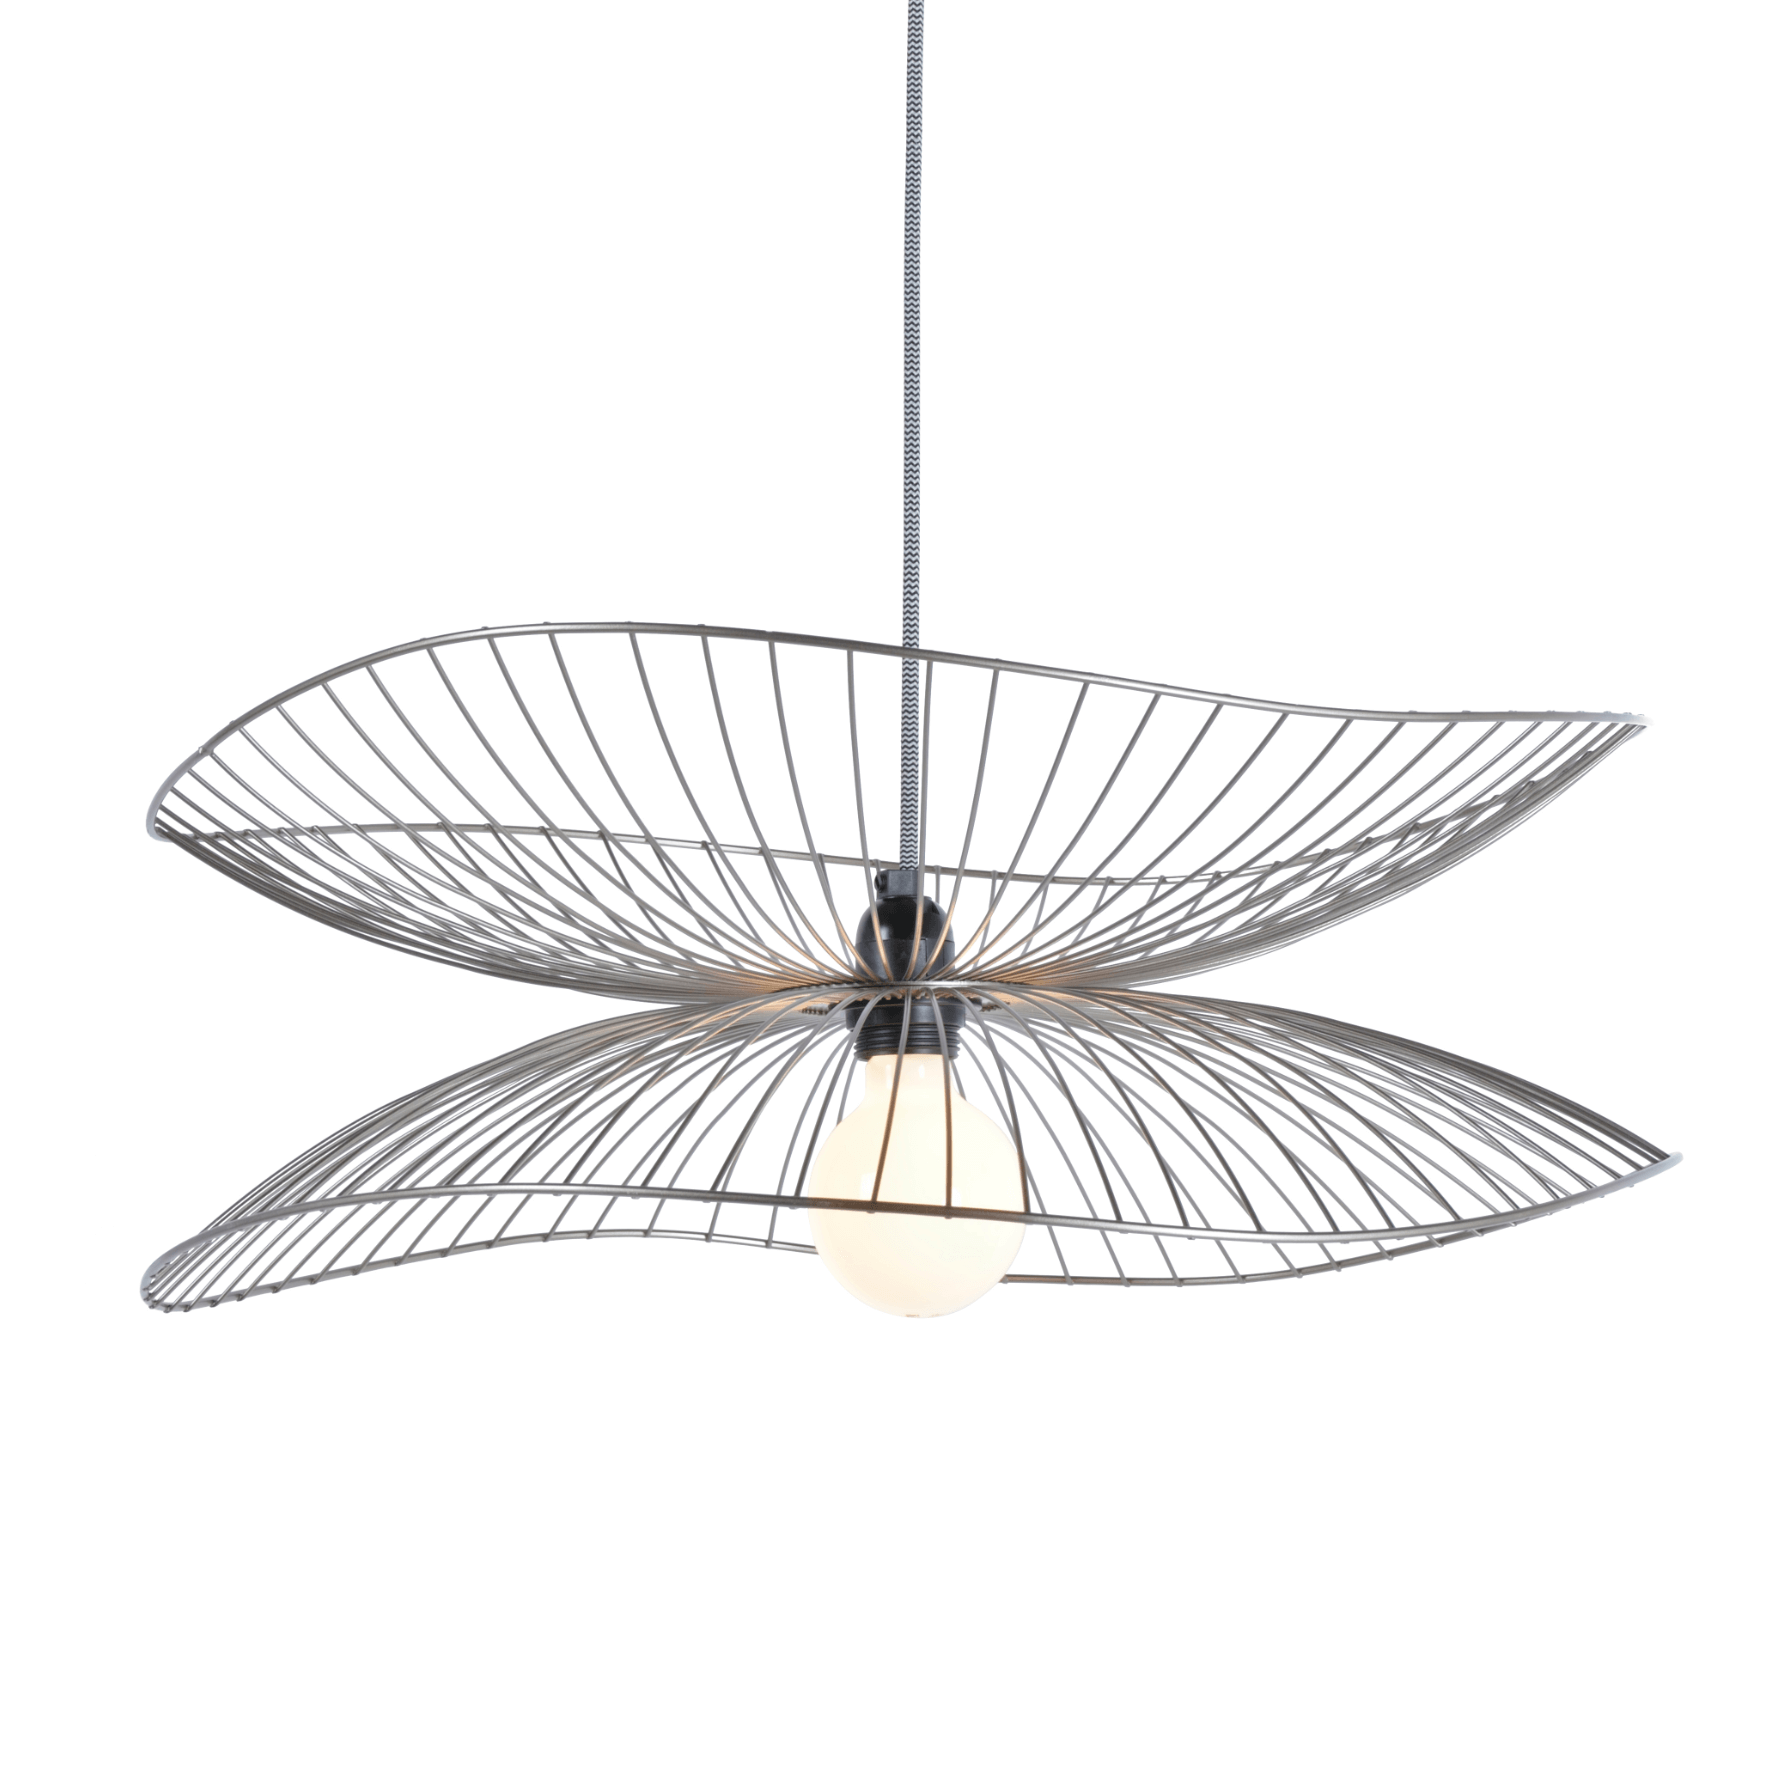 Suspension Libellule Taupe S - Maison Forestier